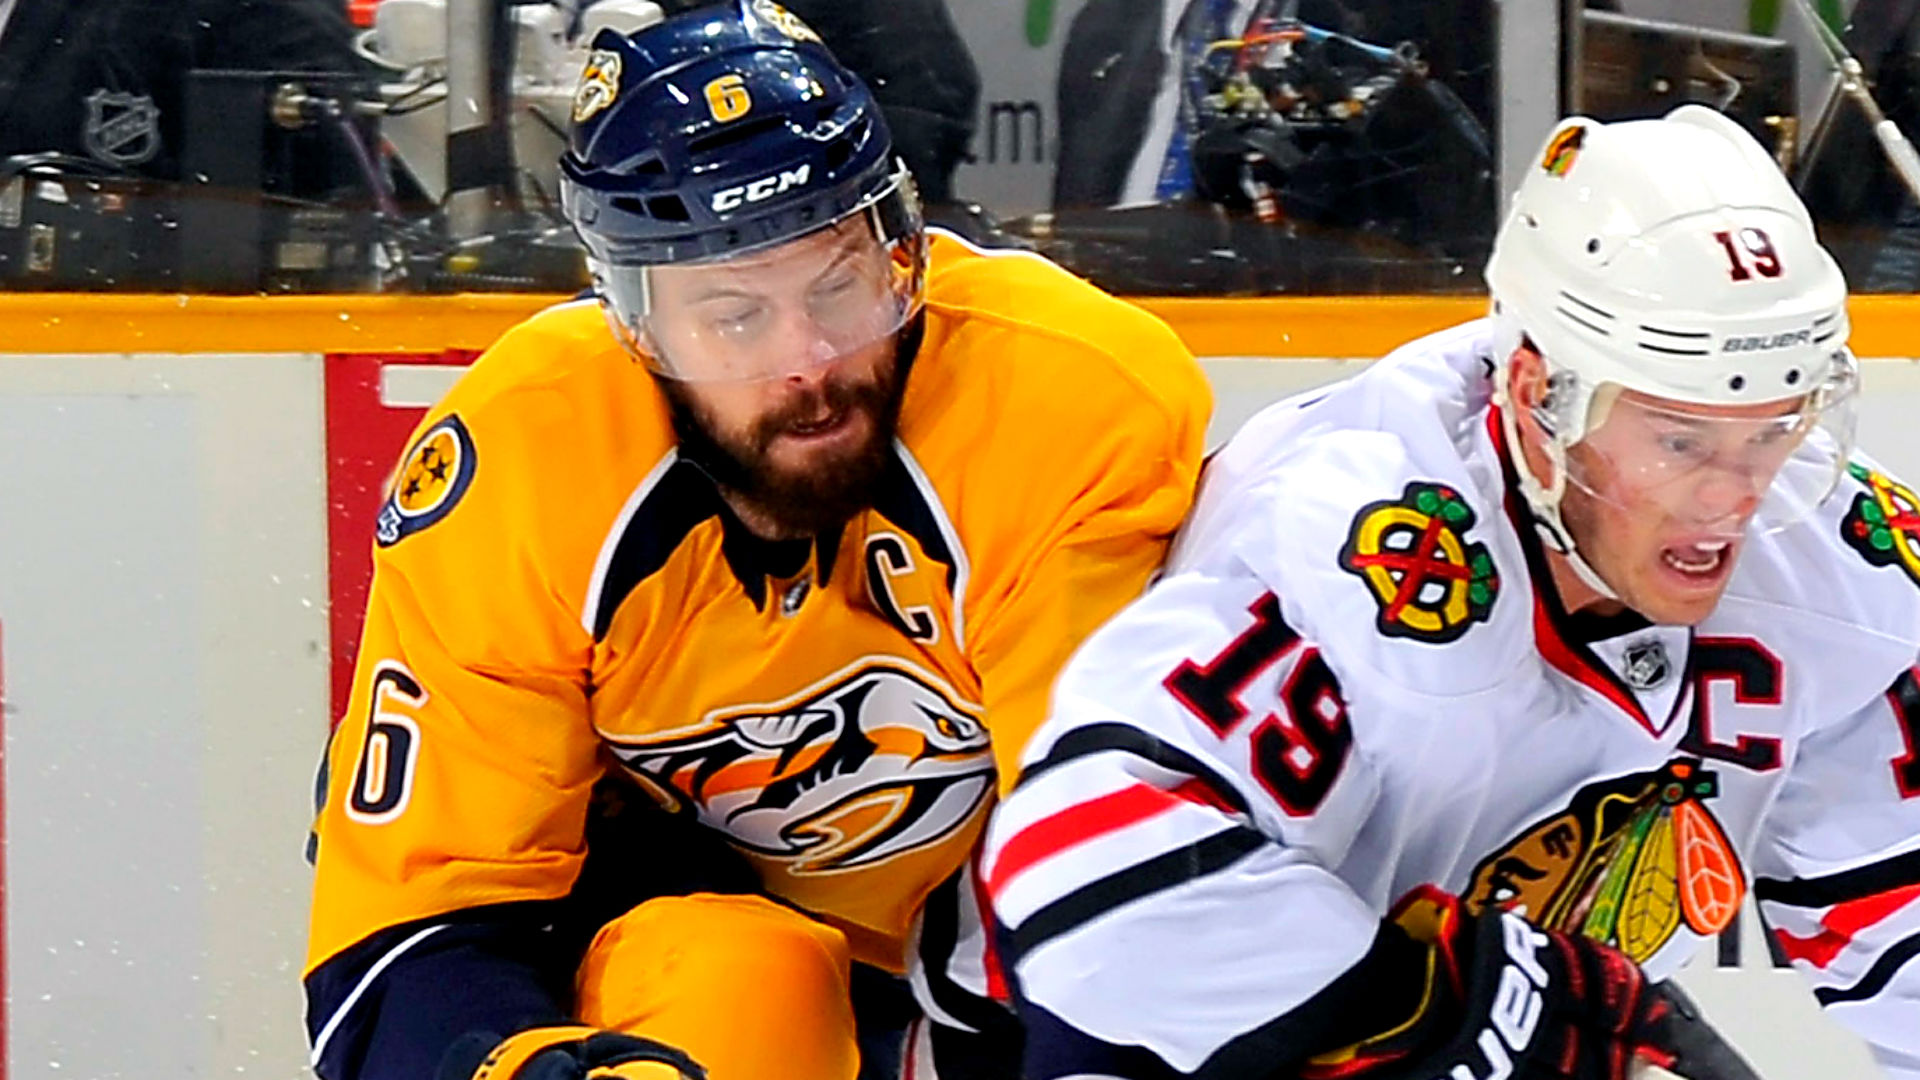 Predators' Shea Weber won't return to Stanley Cup playoffs vs. Blackhawks